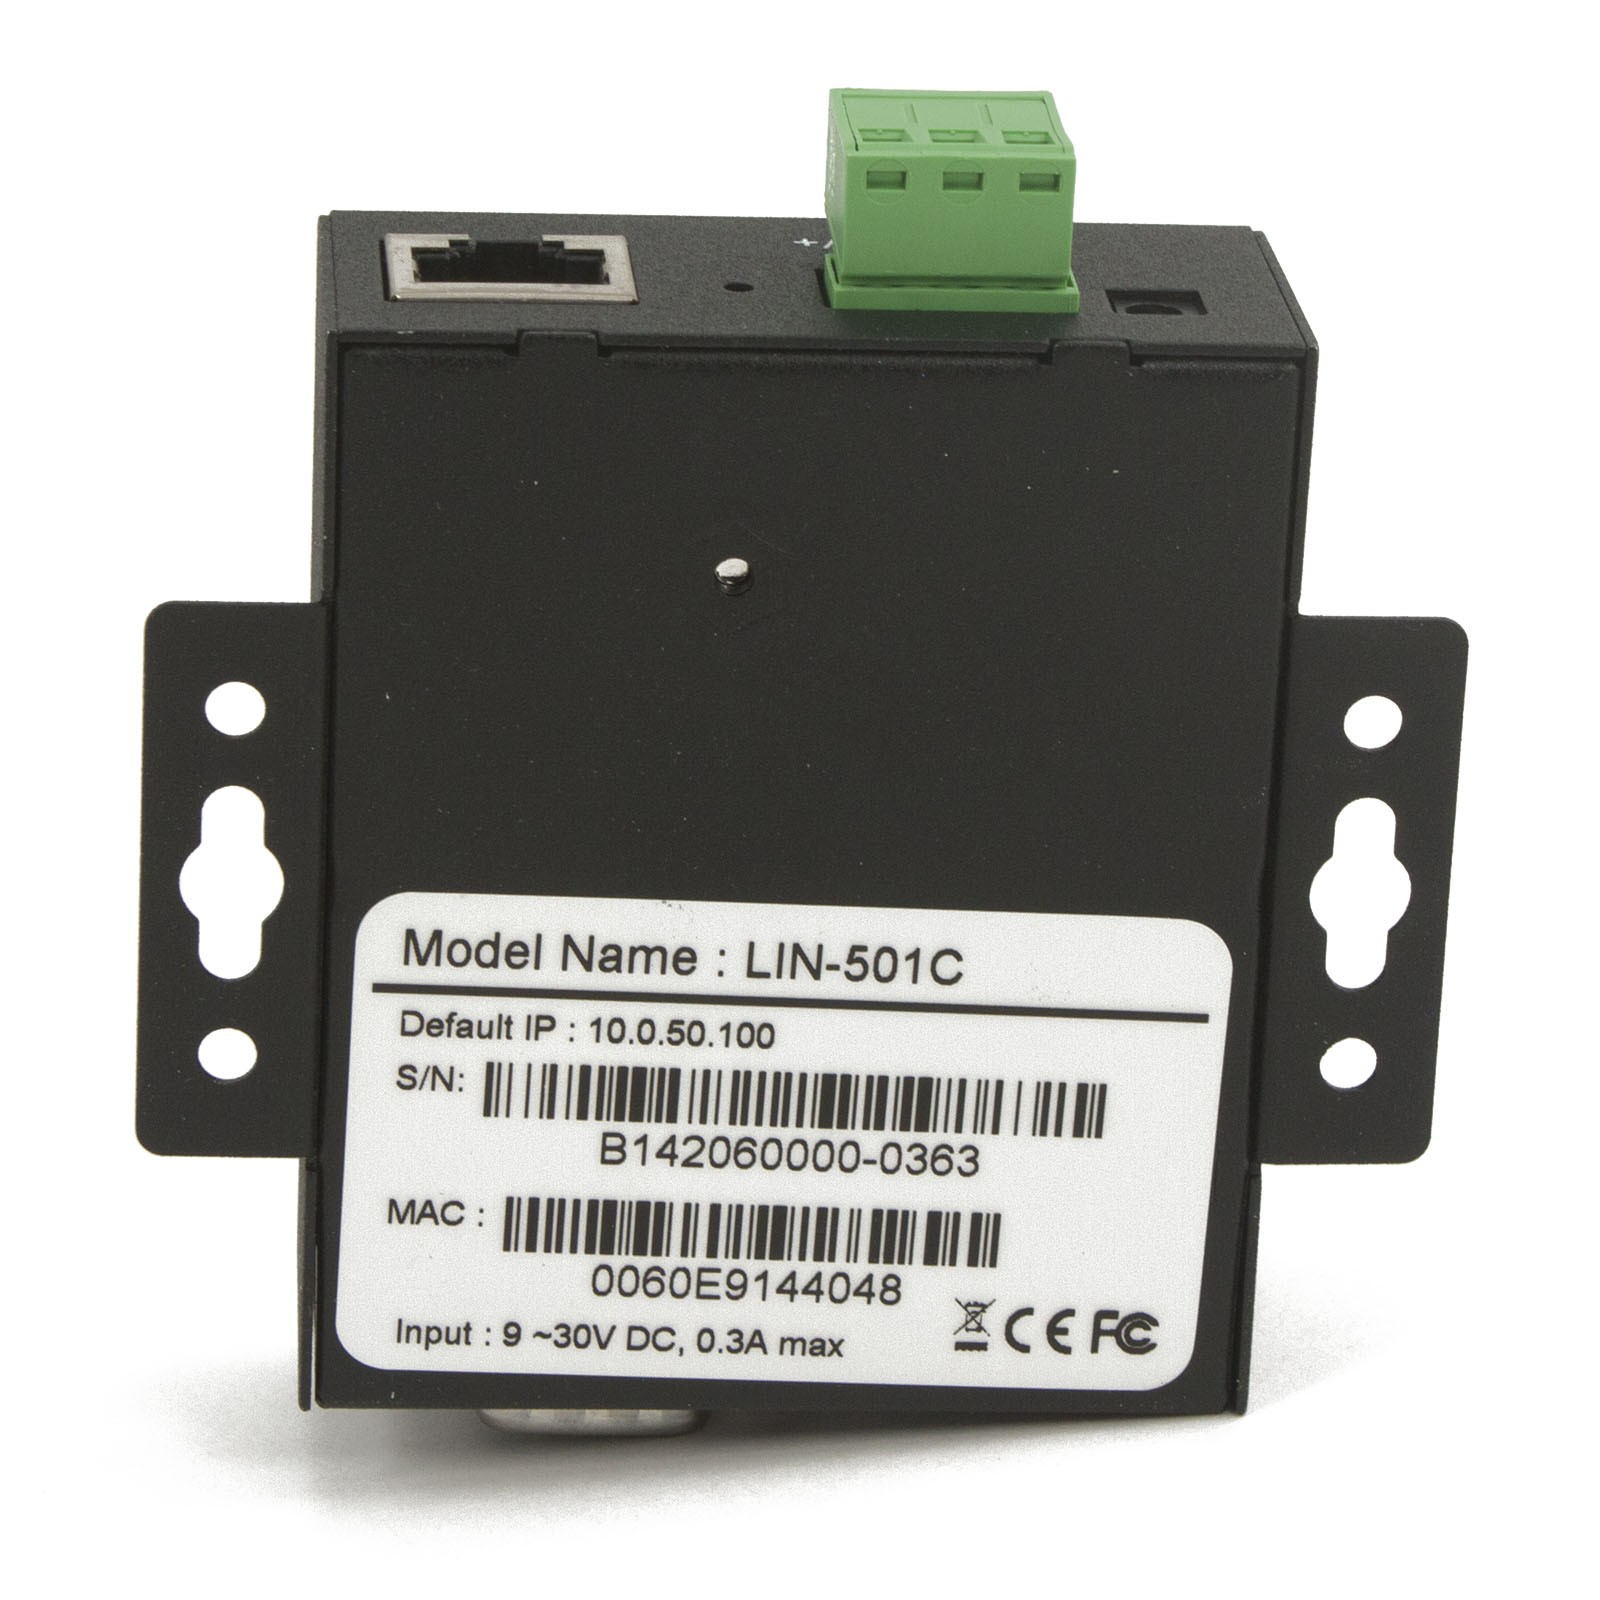 Linear Am Sek Serial To Ethernet Kit For Plus Panels